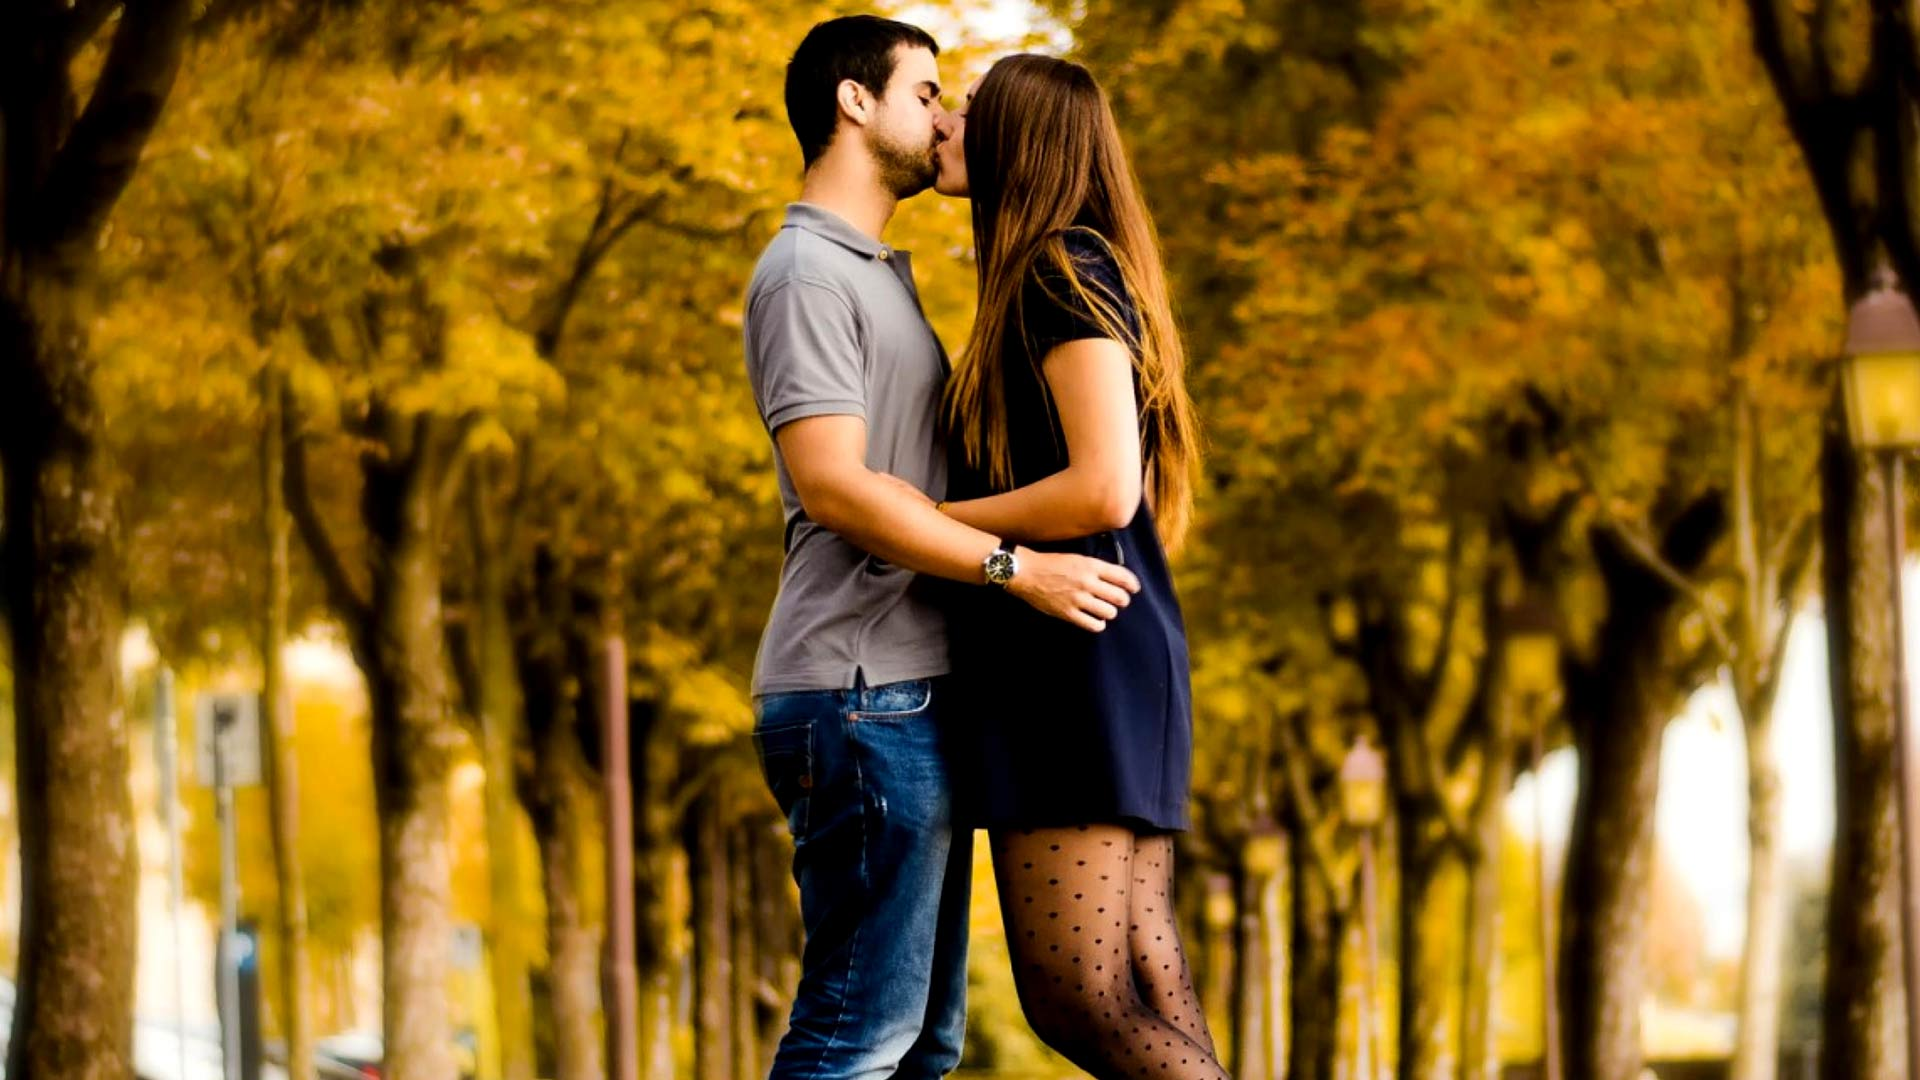 Love Kiss HD Wallpapers Free Download